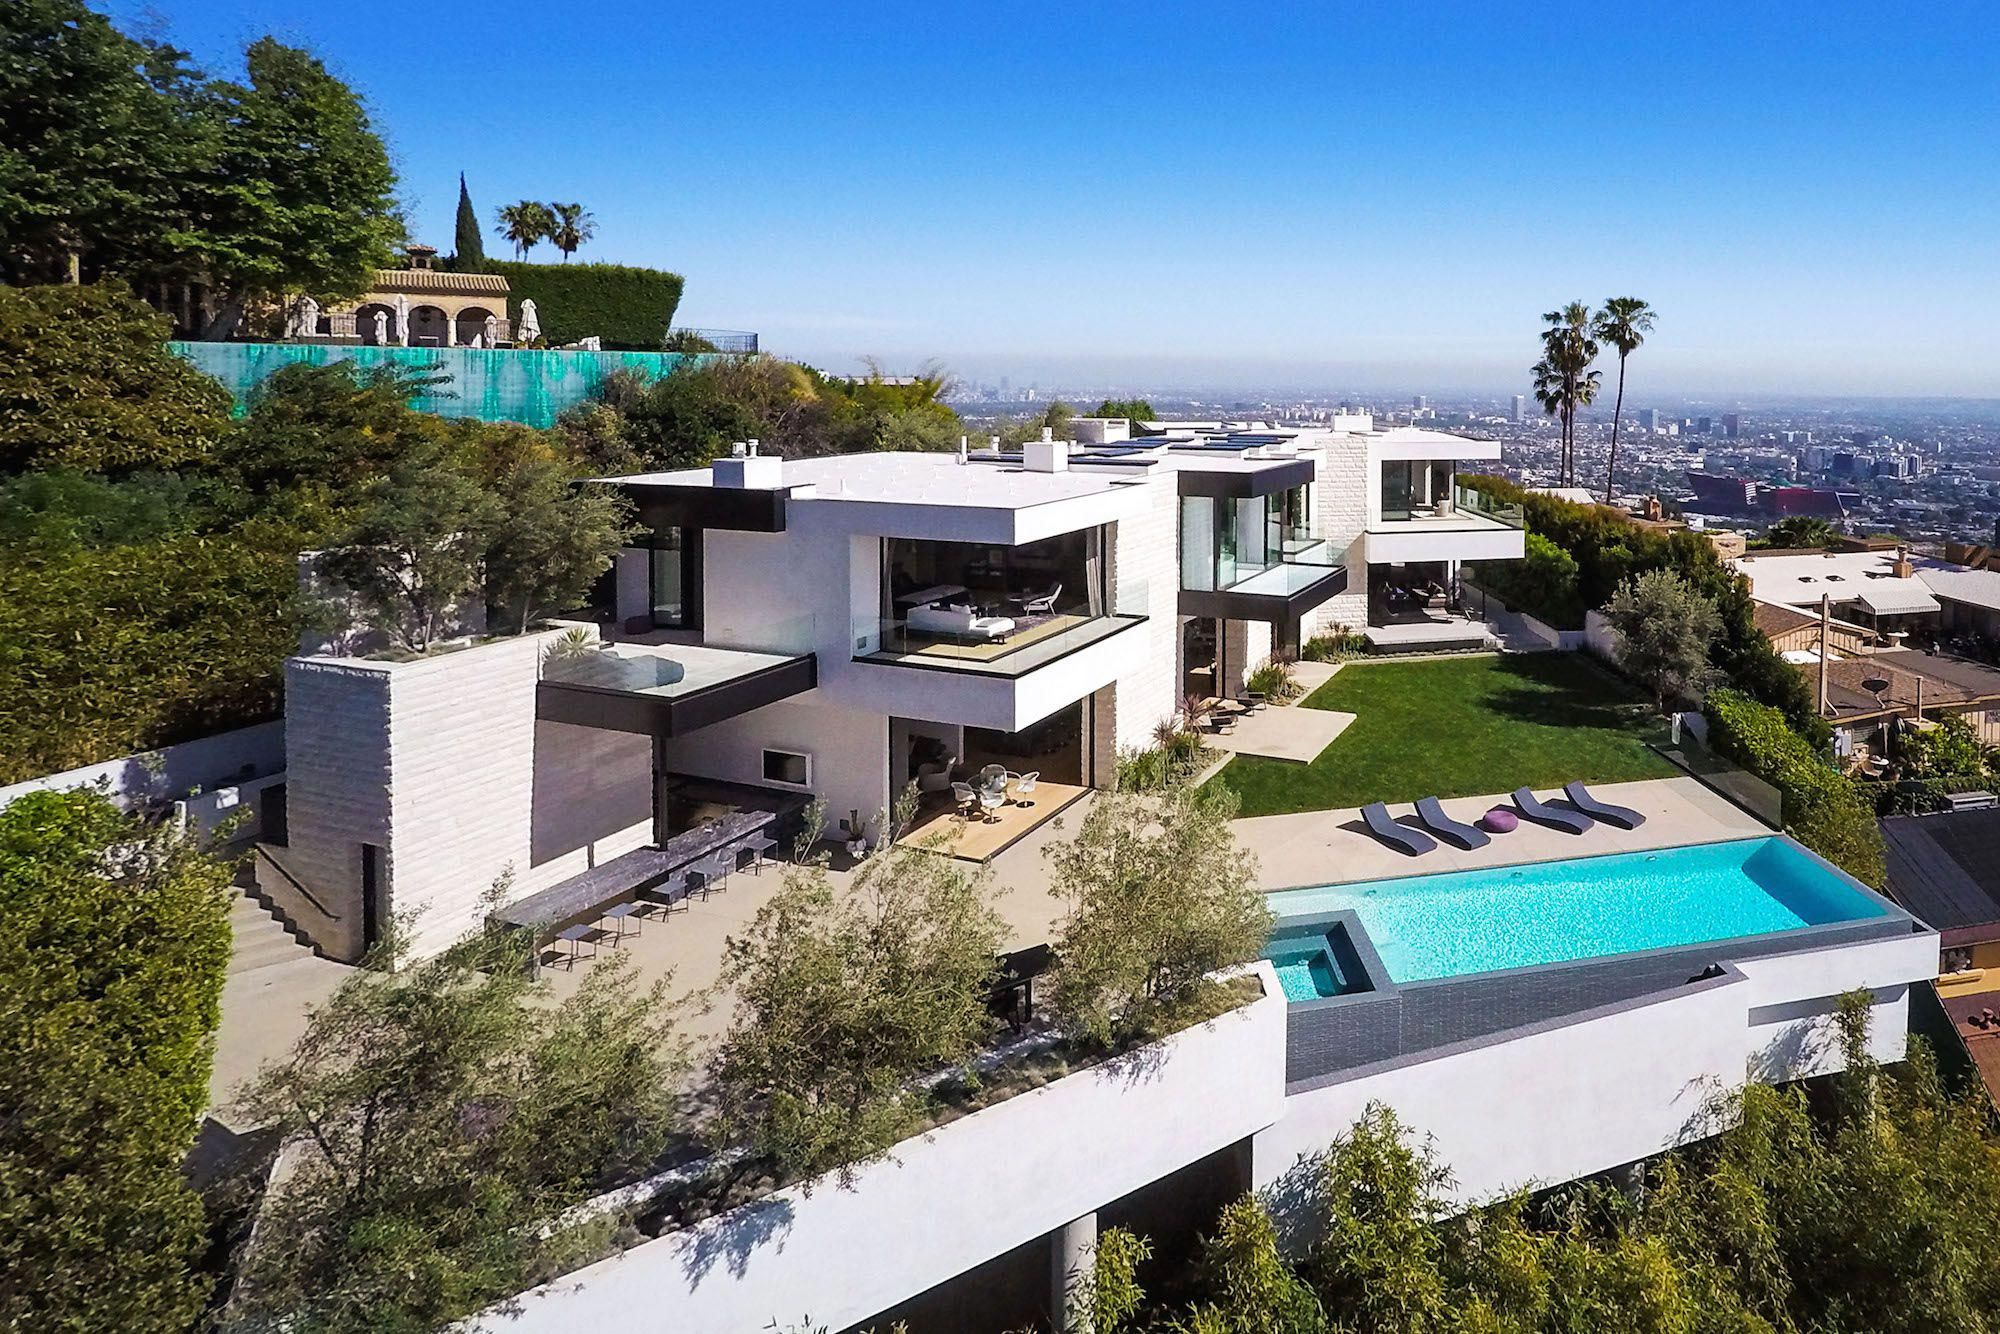 9133 Oriole Way Residence Caandesign Architecture And